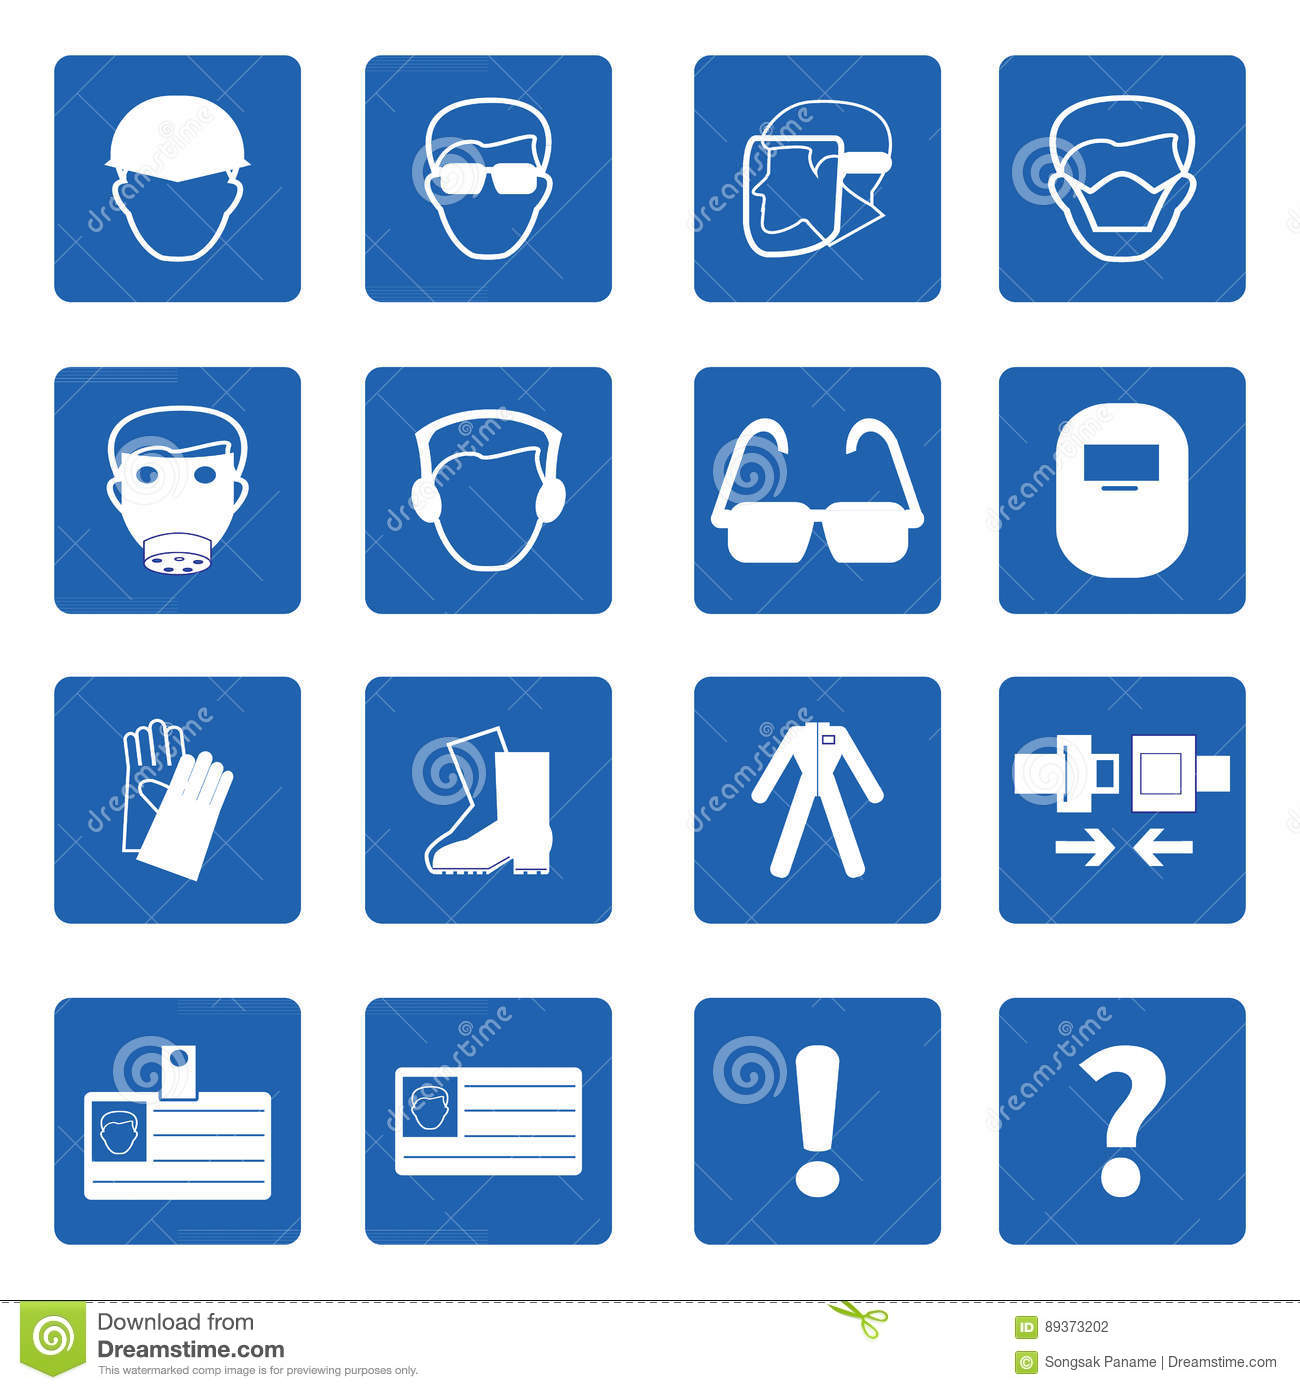 Blue pyramid health and safety icon collection stock vector.